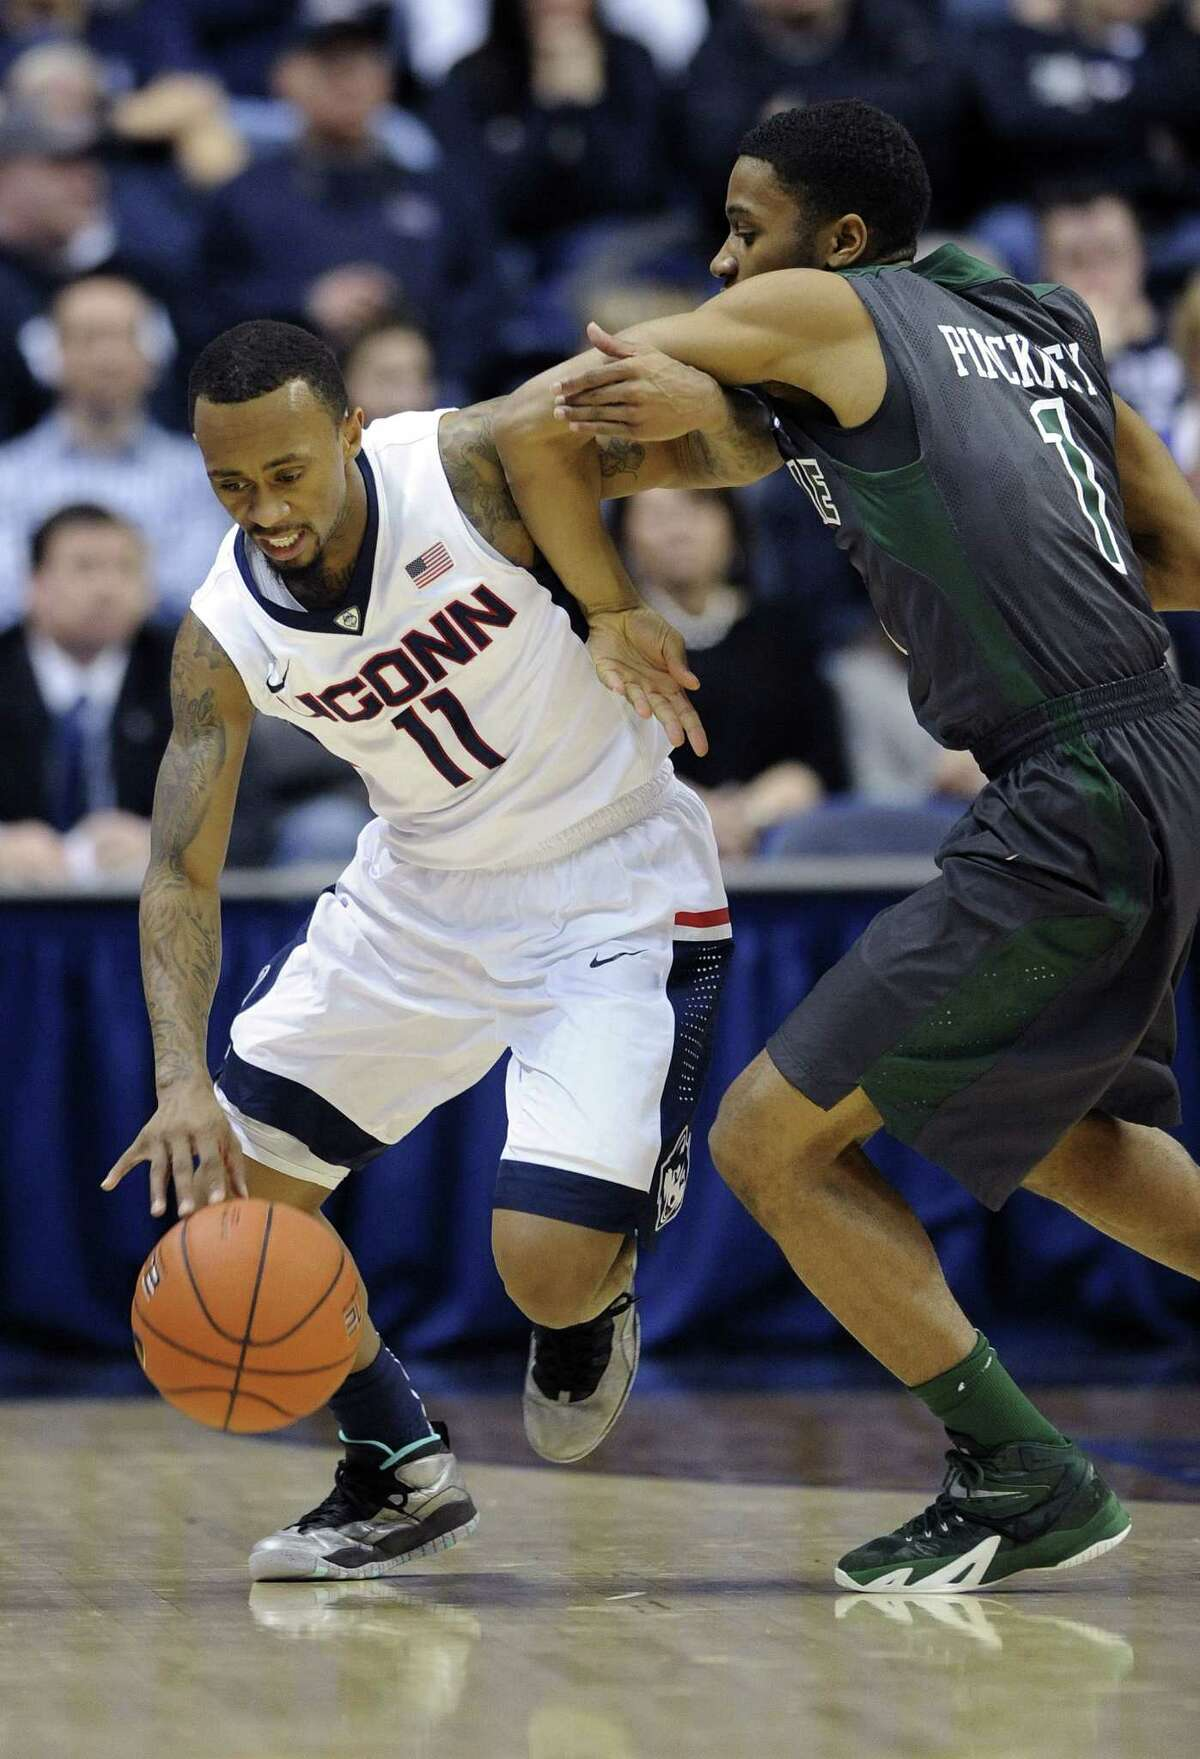 UConn's Ryan Boatright is fouled by Tulane's Keith Pinckney last Sunday in Storrs.